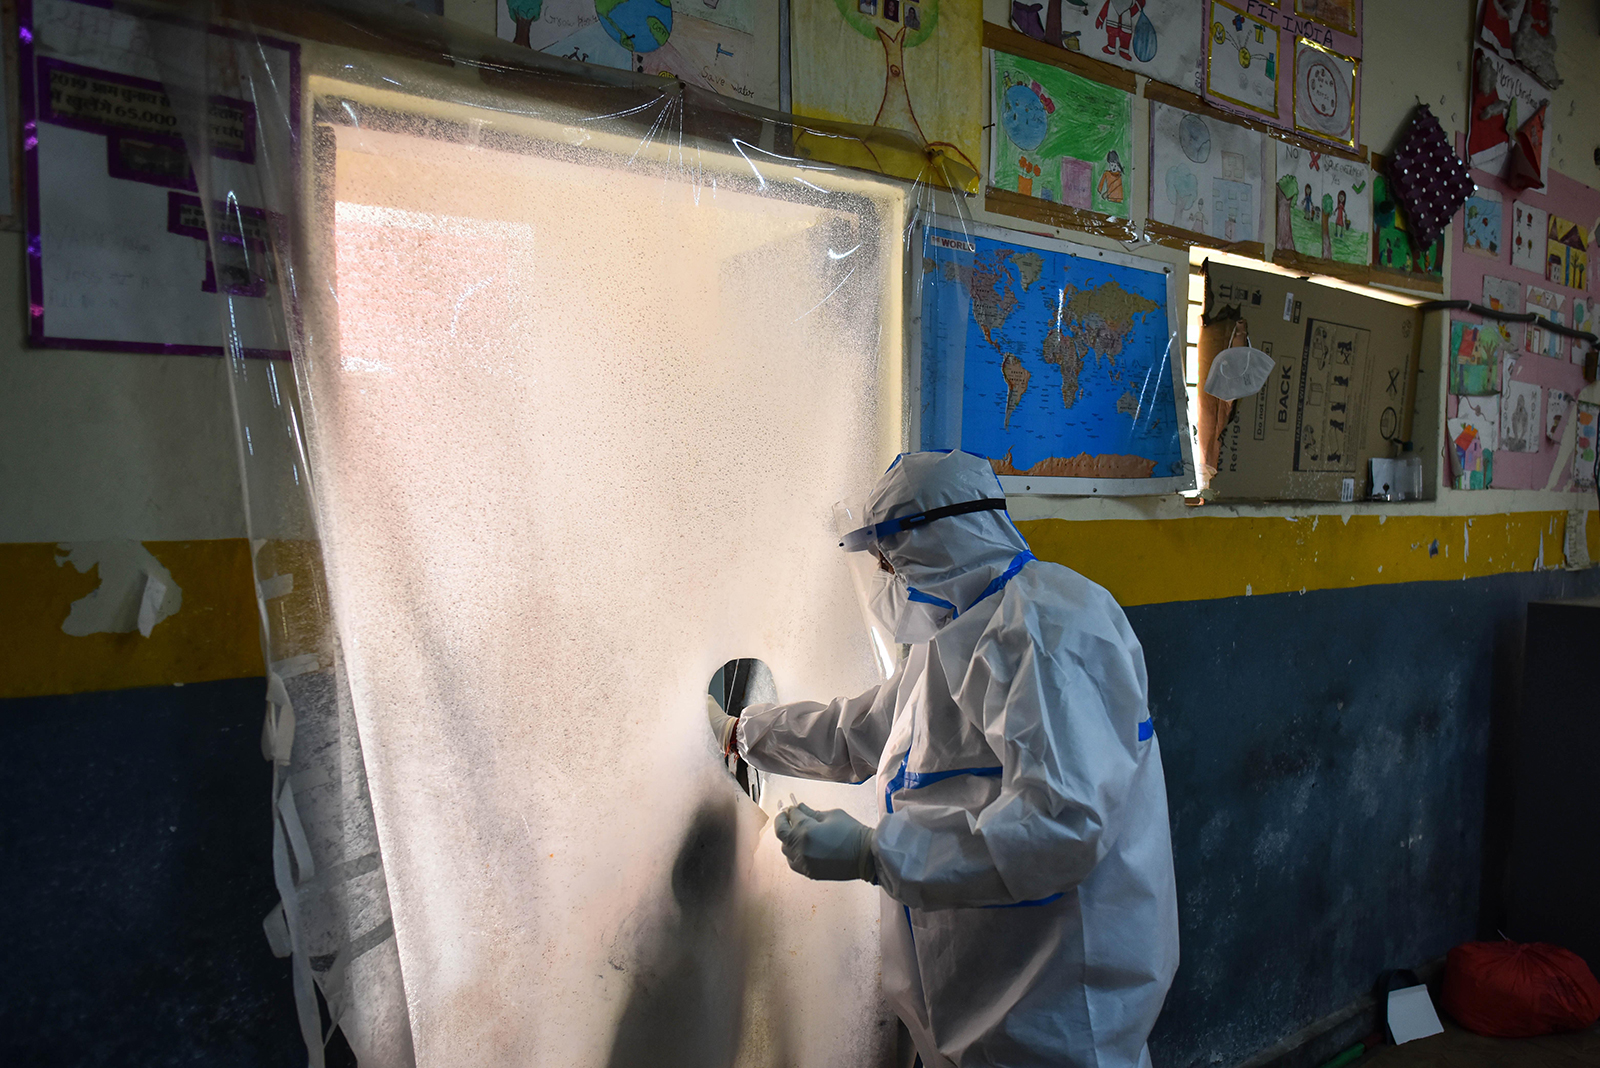 A health worker in PPE coveralls collects a swab sample from behind a protective screen for coronavirus testing, at Khajur Khas in New Delhi, India, on October 28.